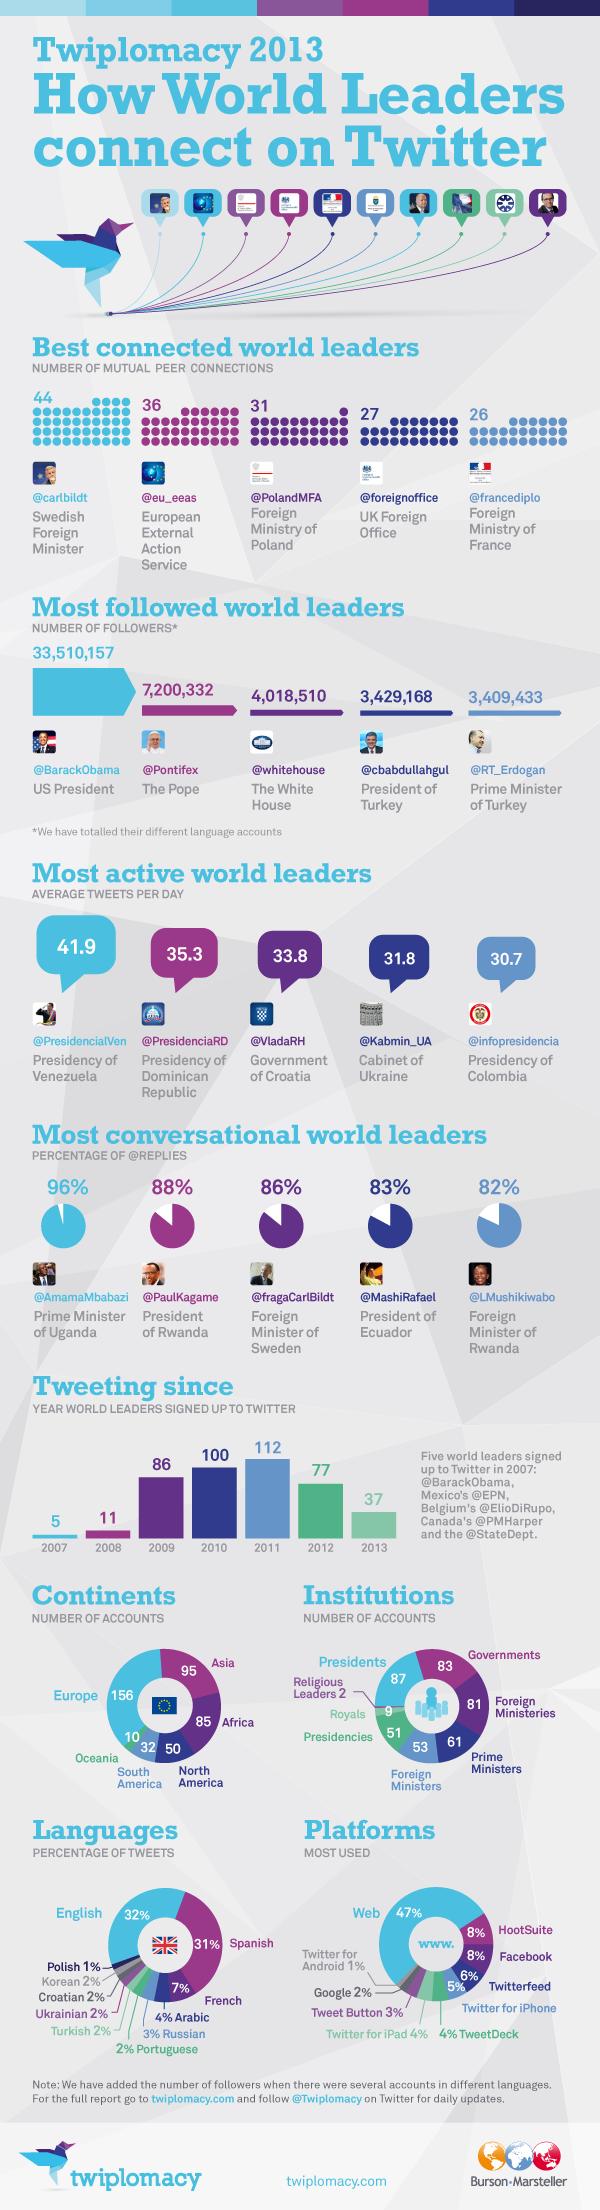 How World Leaders Connect on Twitter infographic